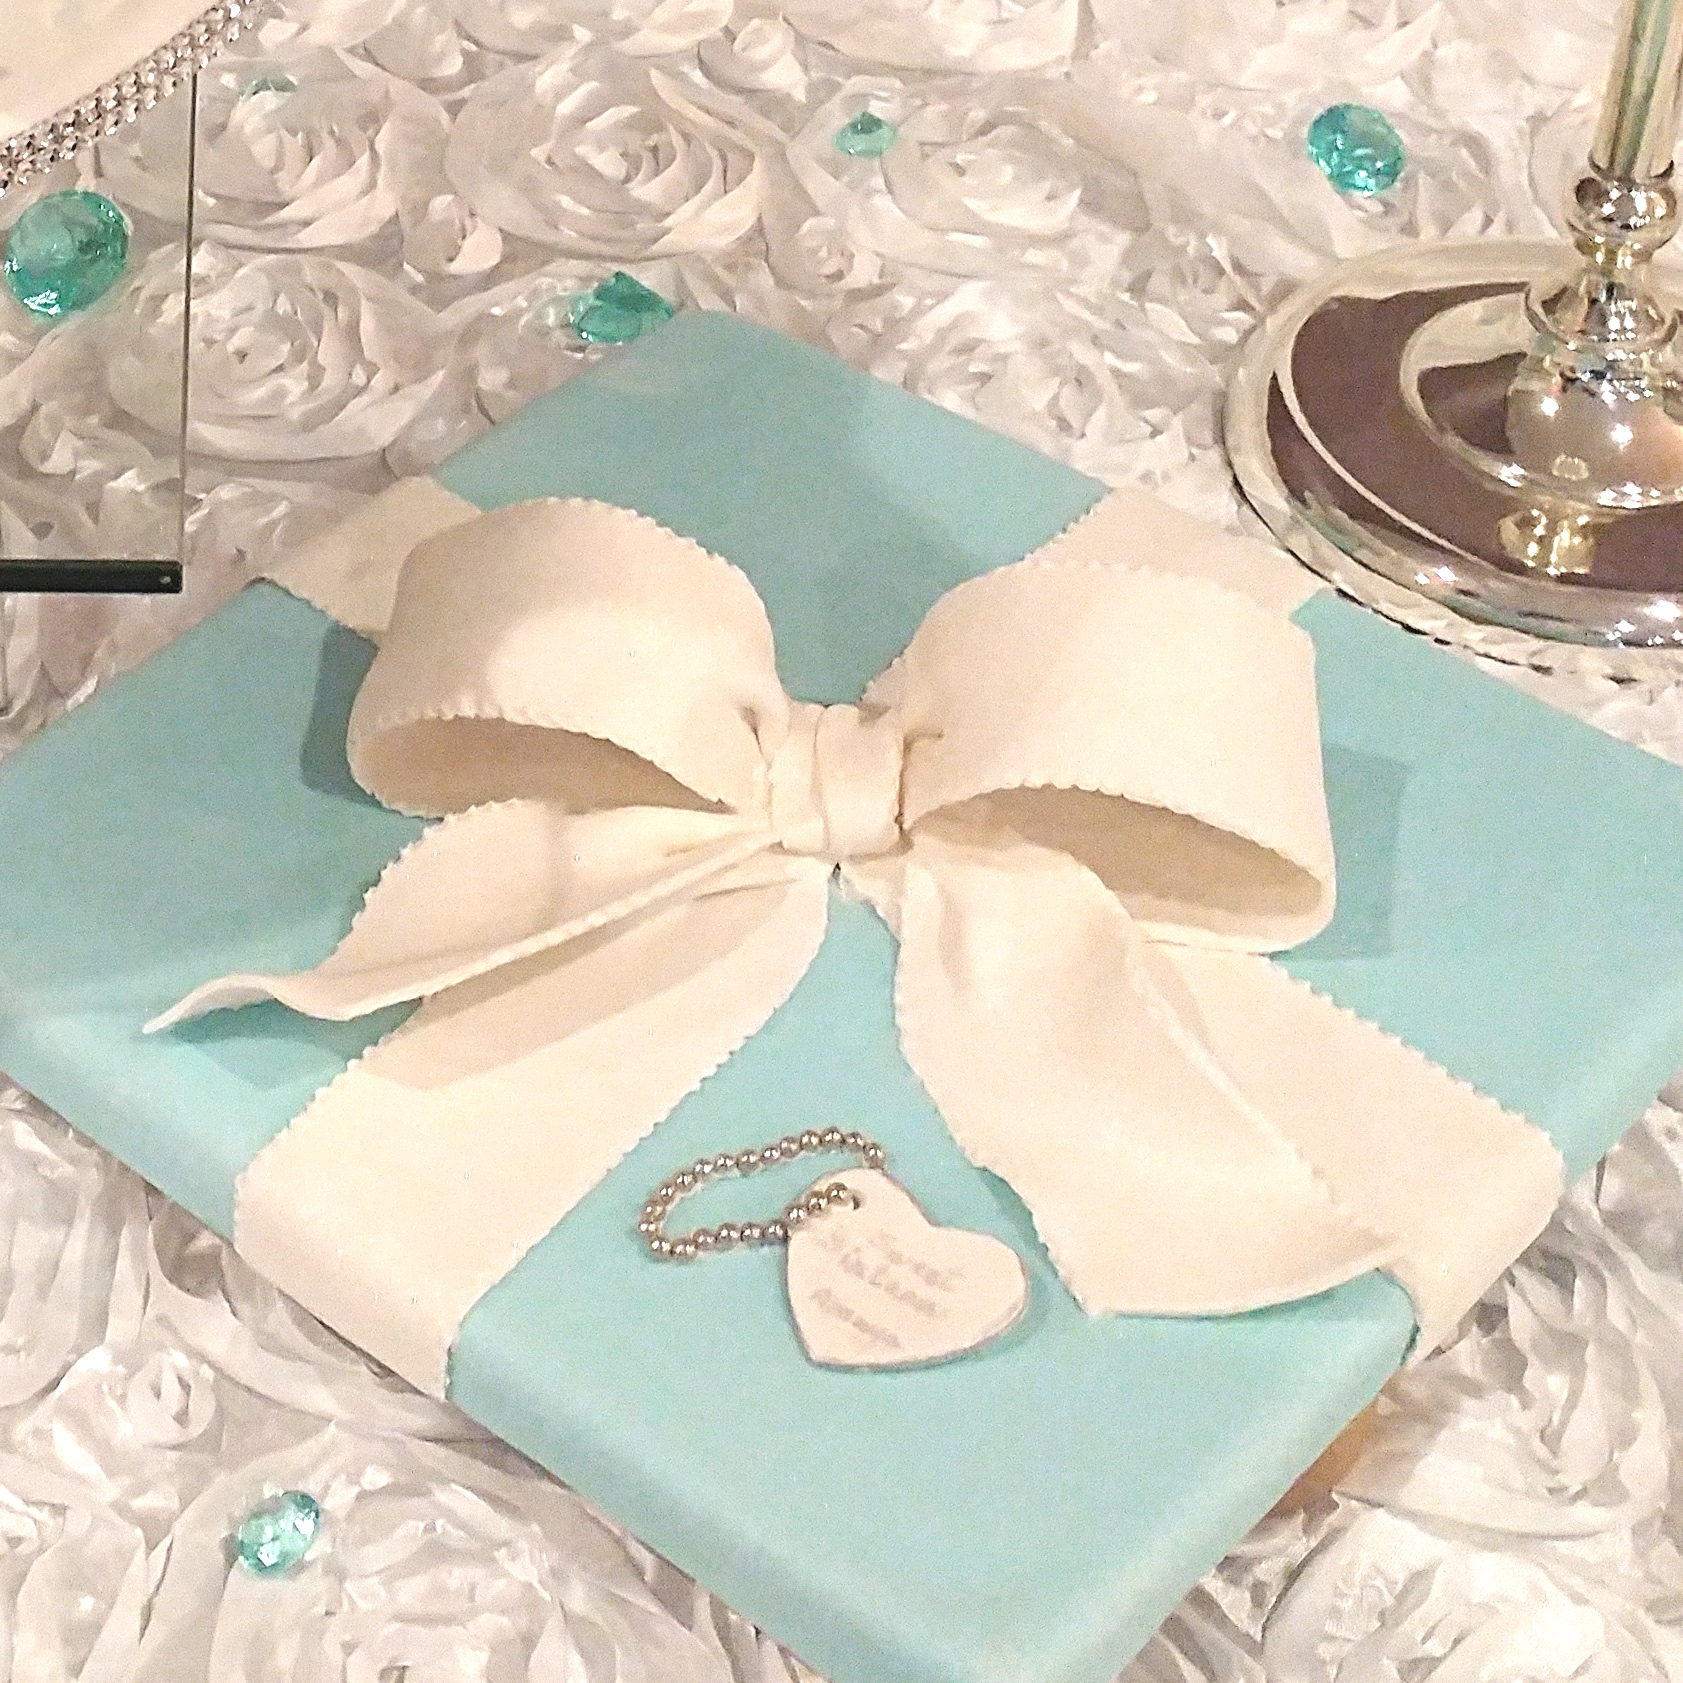 Blue Gift at the Top of the Wedding Cake | Sewing and Cake Art Studio in Milton, ON